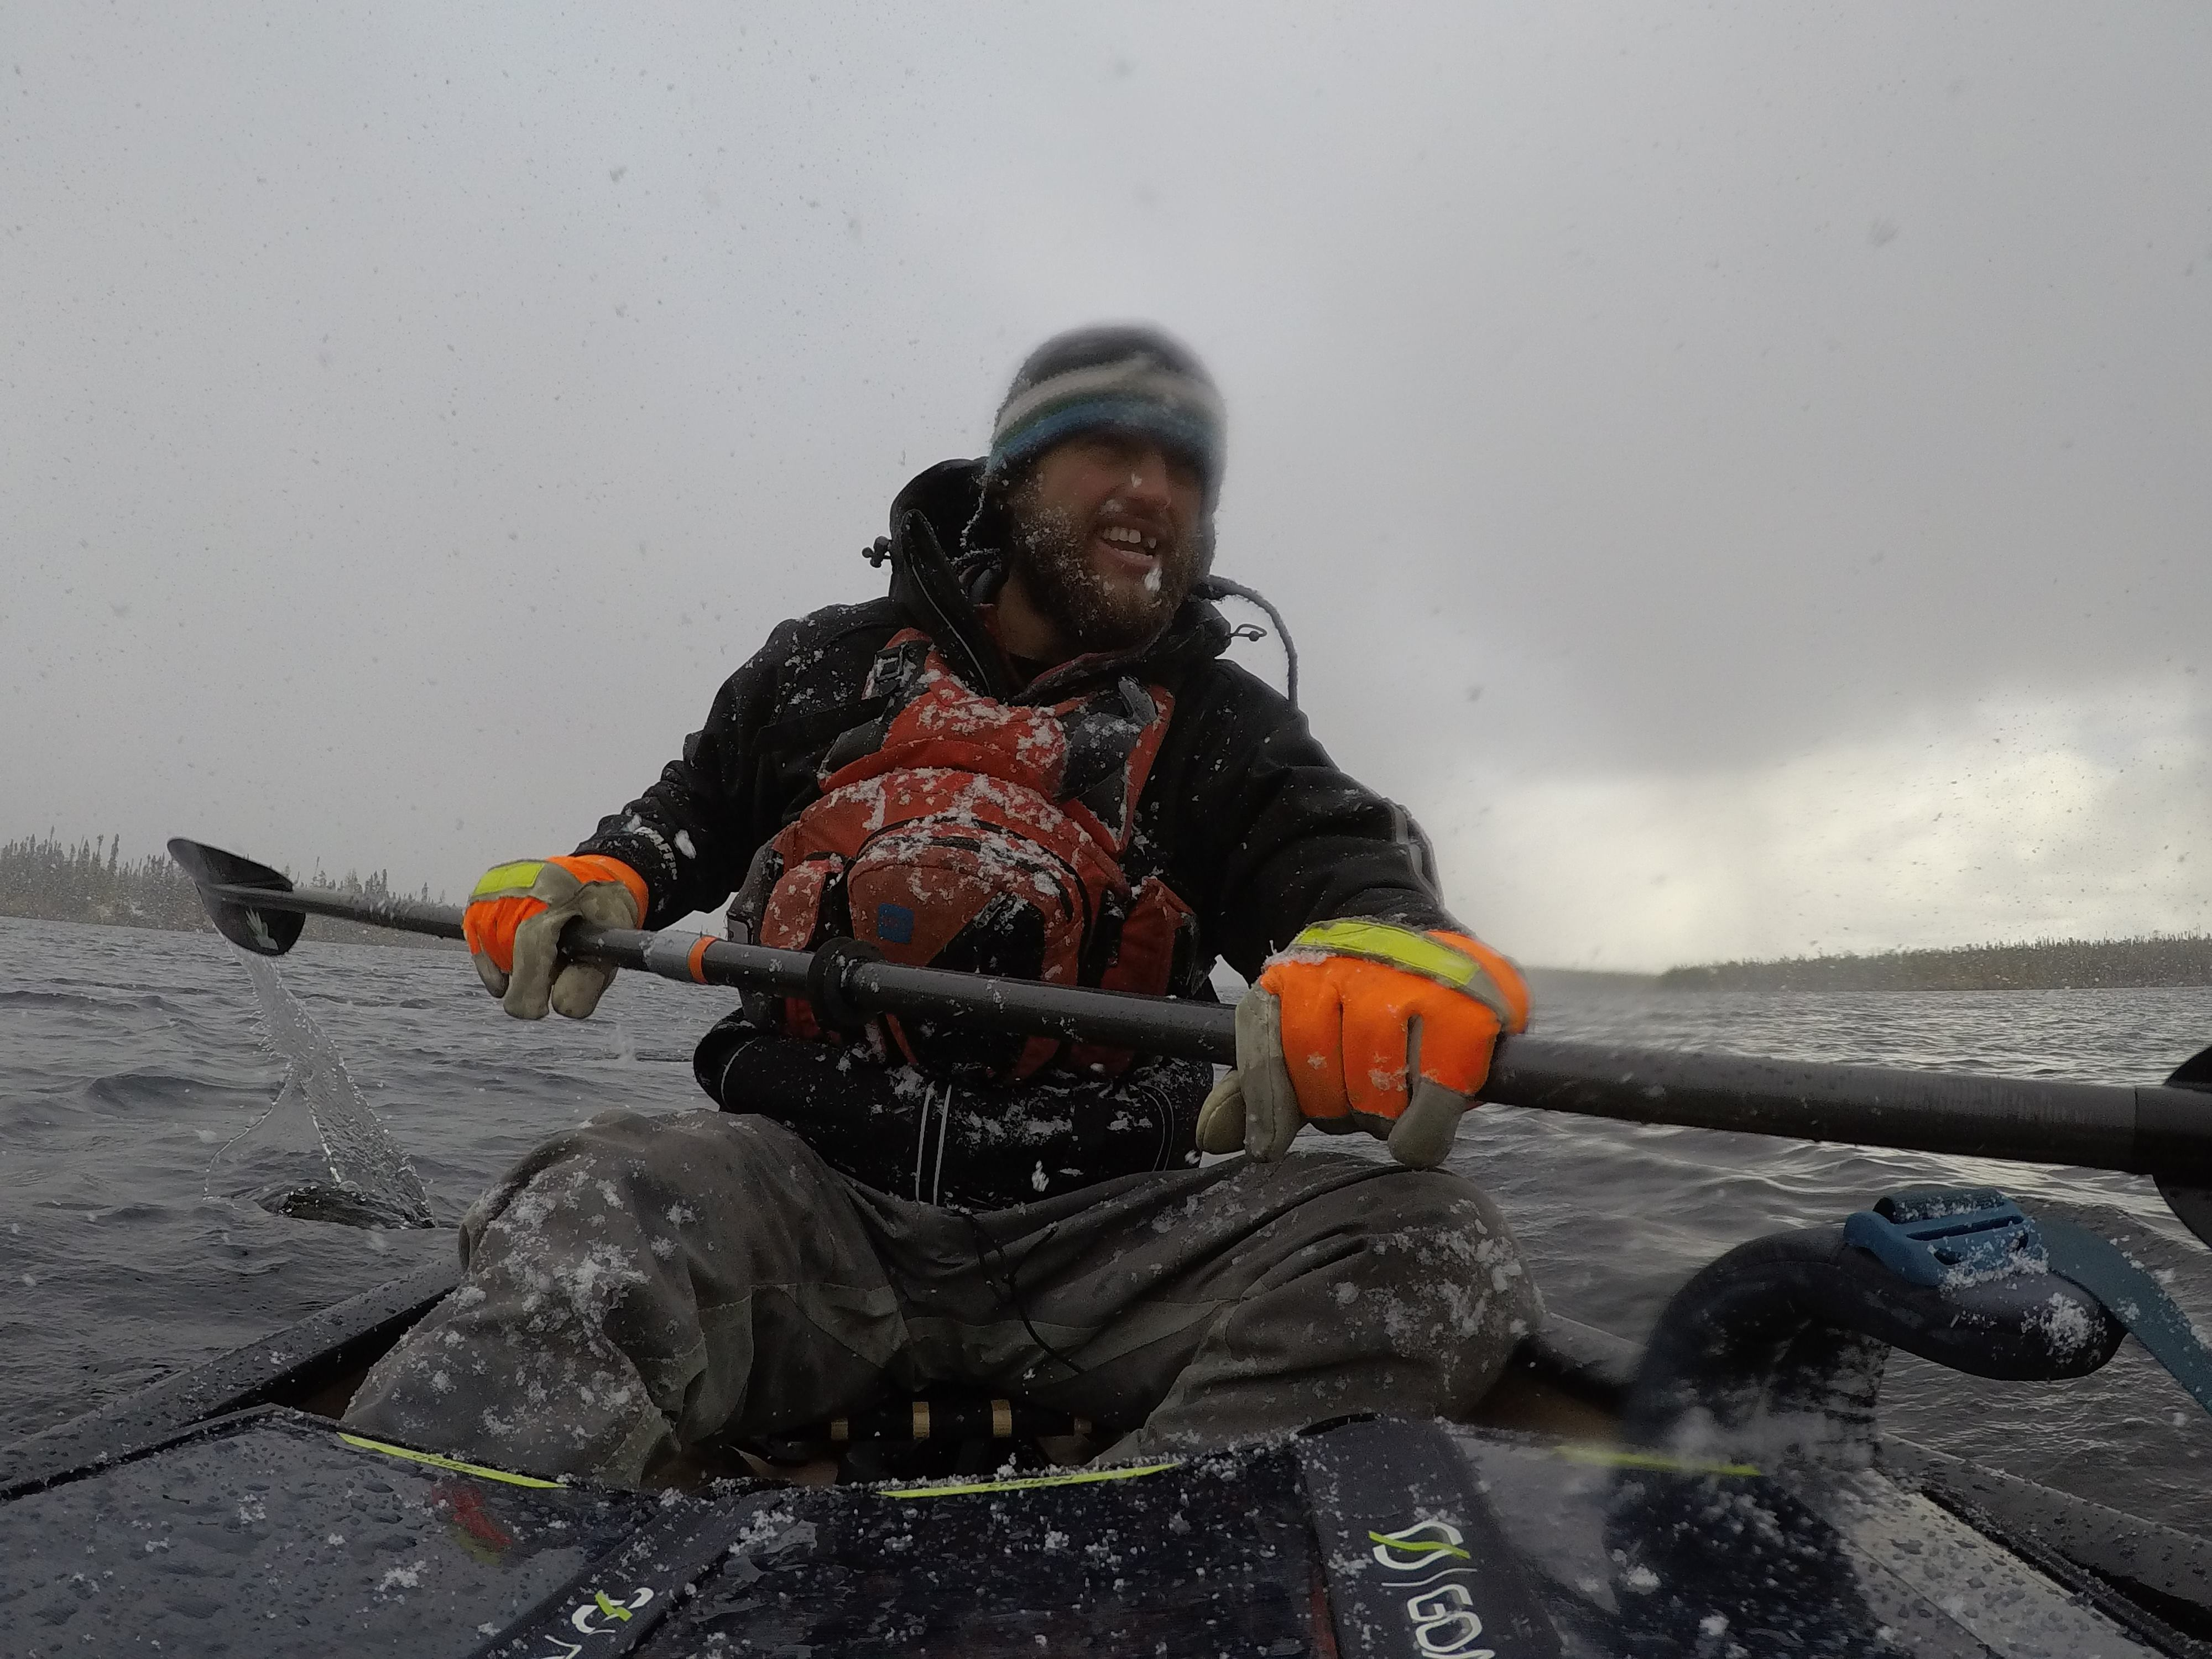 Justin Barbour, hiked and canoed 992 kilometers out of the 1700 kilometers. He faced -25 degree wind chills and 40 centimeters of snow. Submitted by Justin Barbour.